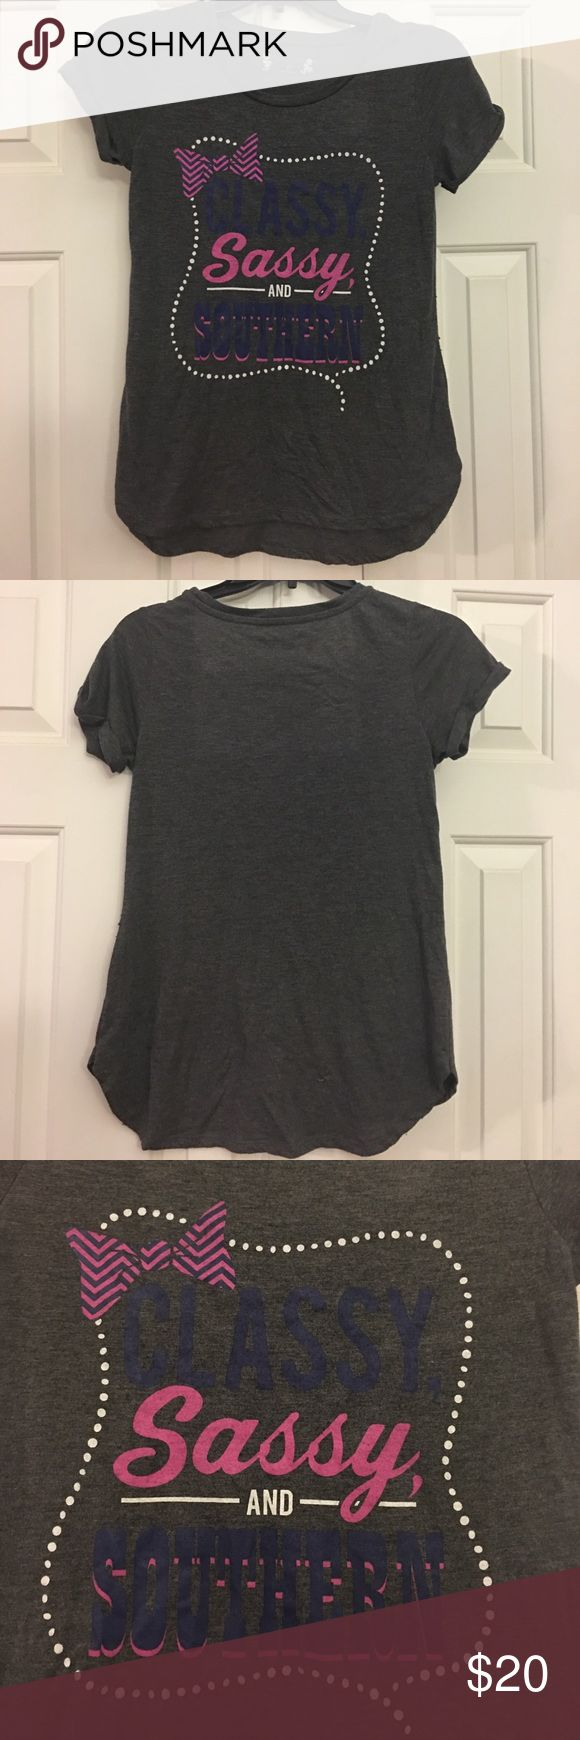 Red Camel Tee t shirt Classy Sassy & Southern Super cute tee Small **No Trades** Only Reasonable offers will be considered **sold as is in preowned/ used condition with the expected wear associated with/to preowned used items Red Camel Tops Tees - Short Sleeve